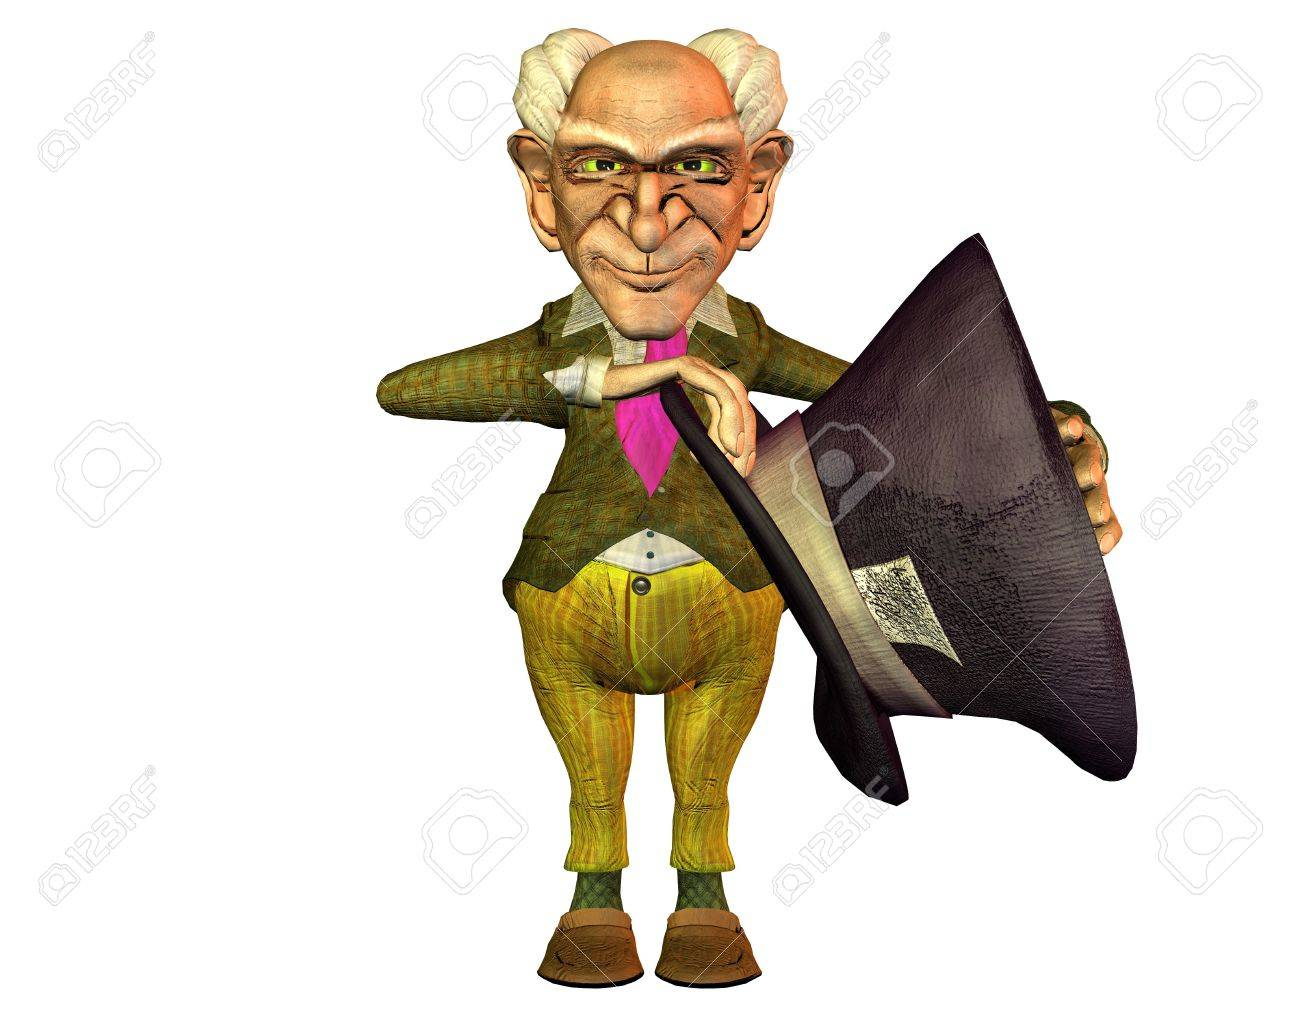 3d rendering of an old man with a big hat as illustration in comic style Stock Photo - 11209923